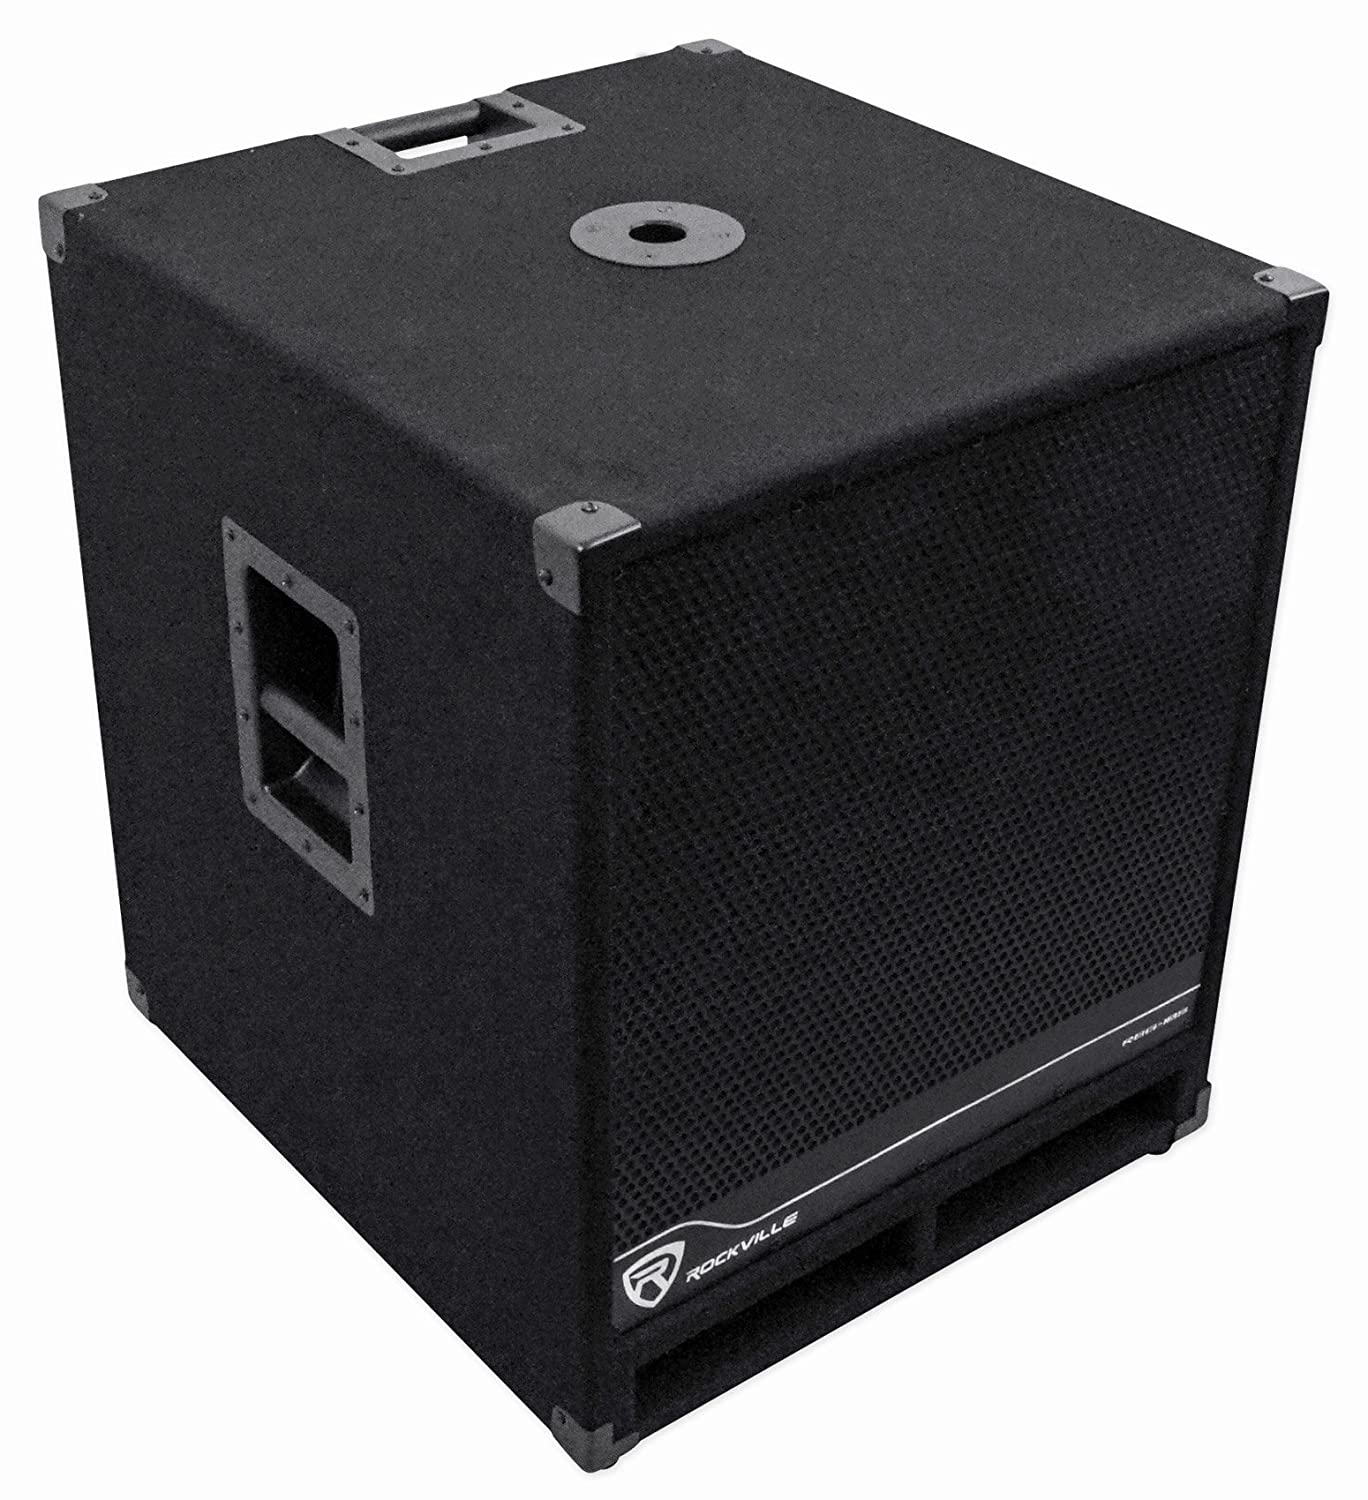 Rockville Rbg18s 18 2000 Watt Active Powered Pa Ohm Subwoofer Wiring Likewise Dual Voice Coil Speaker W Dsp Limiter Pro Dj Musical Instruments